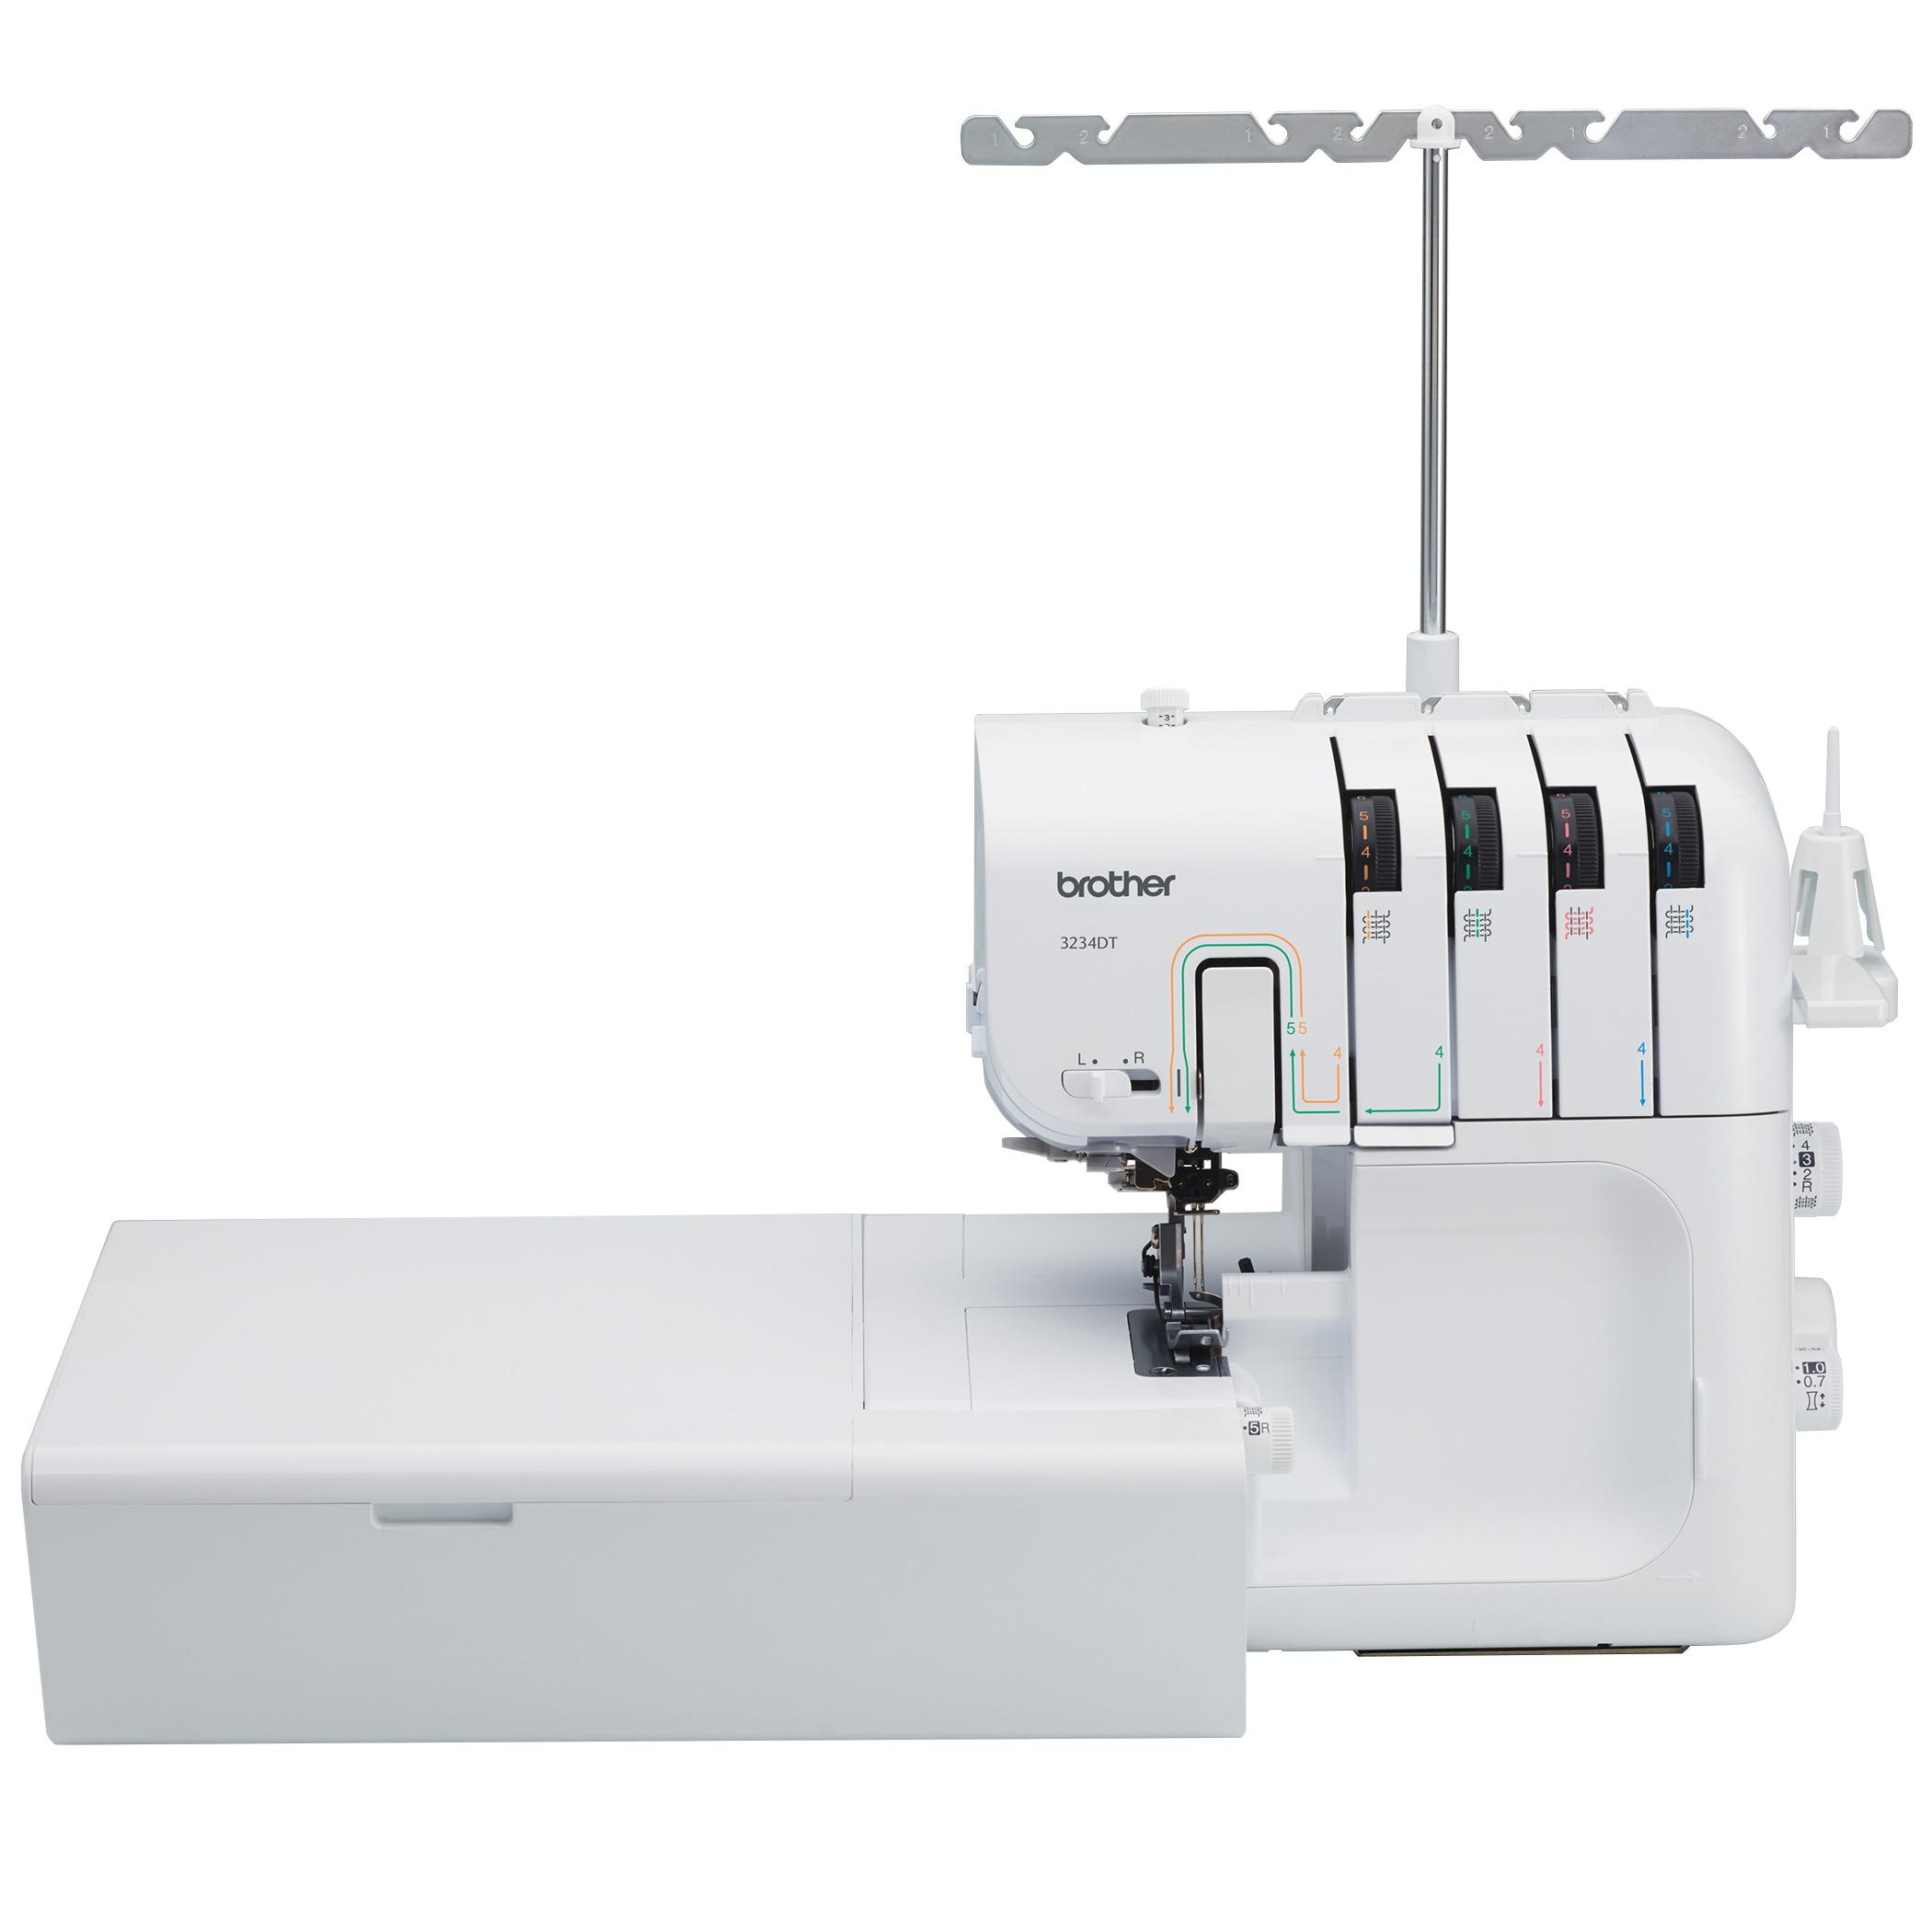 brother 3234dt 2 3 or 4 thread serger with differential feed. Black Bedroom Furniture Sets. Home Design Ideas